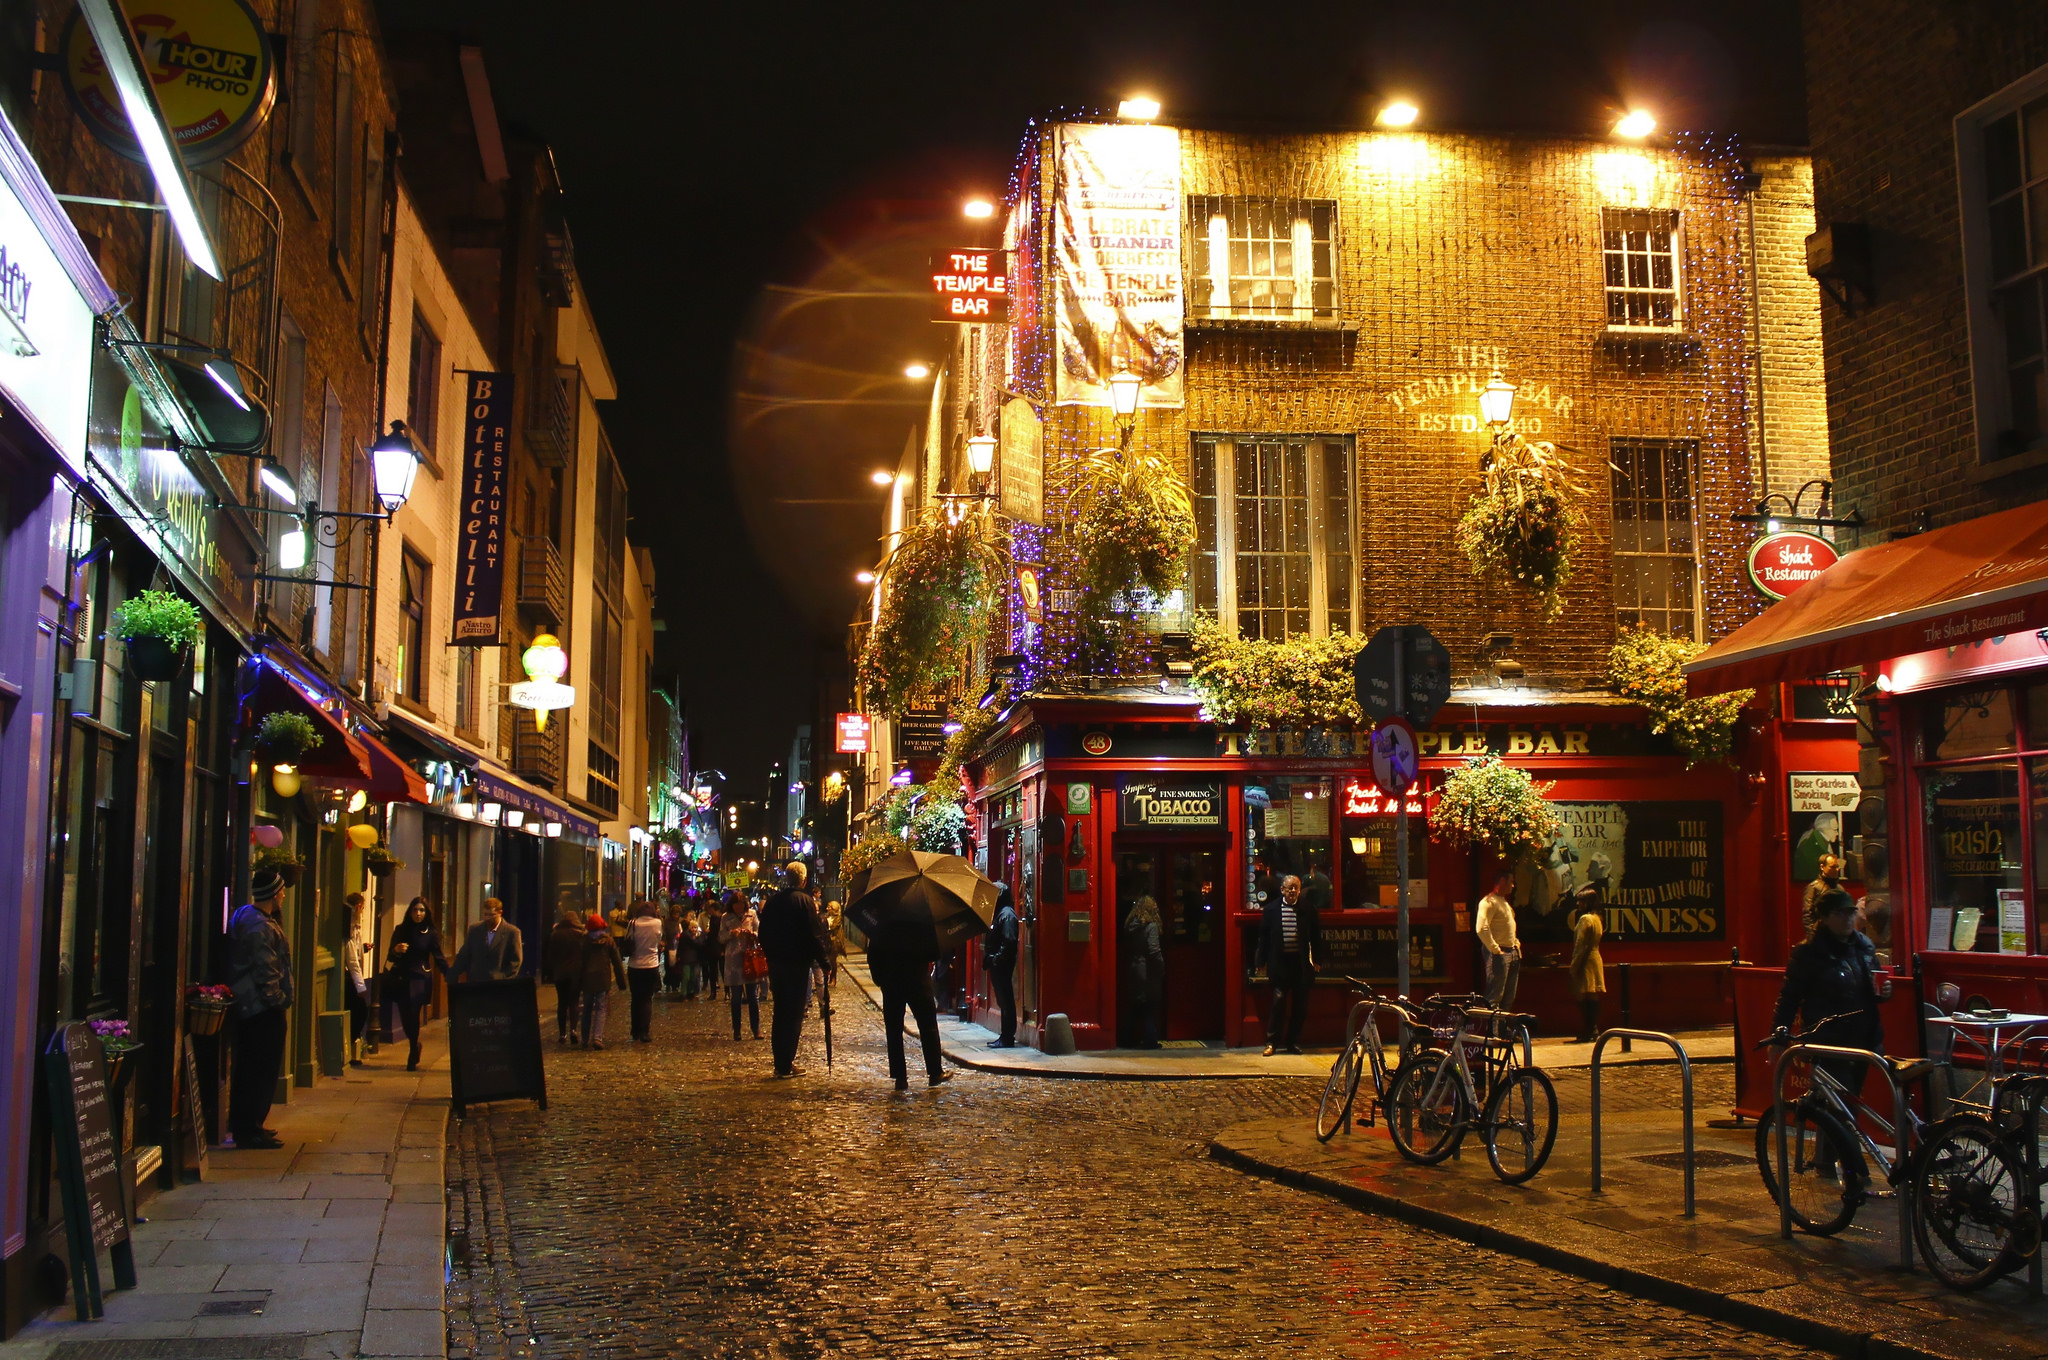 Dublin_by_night_Temple_Bar_CC0.jpg?1544805477